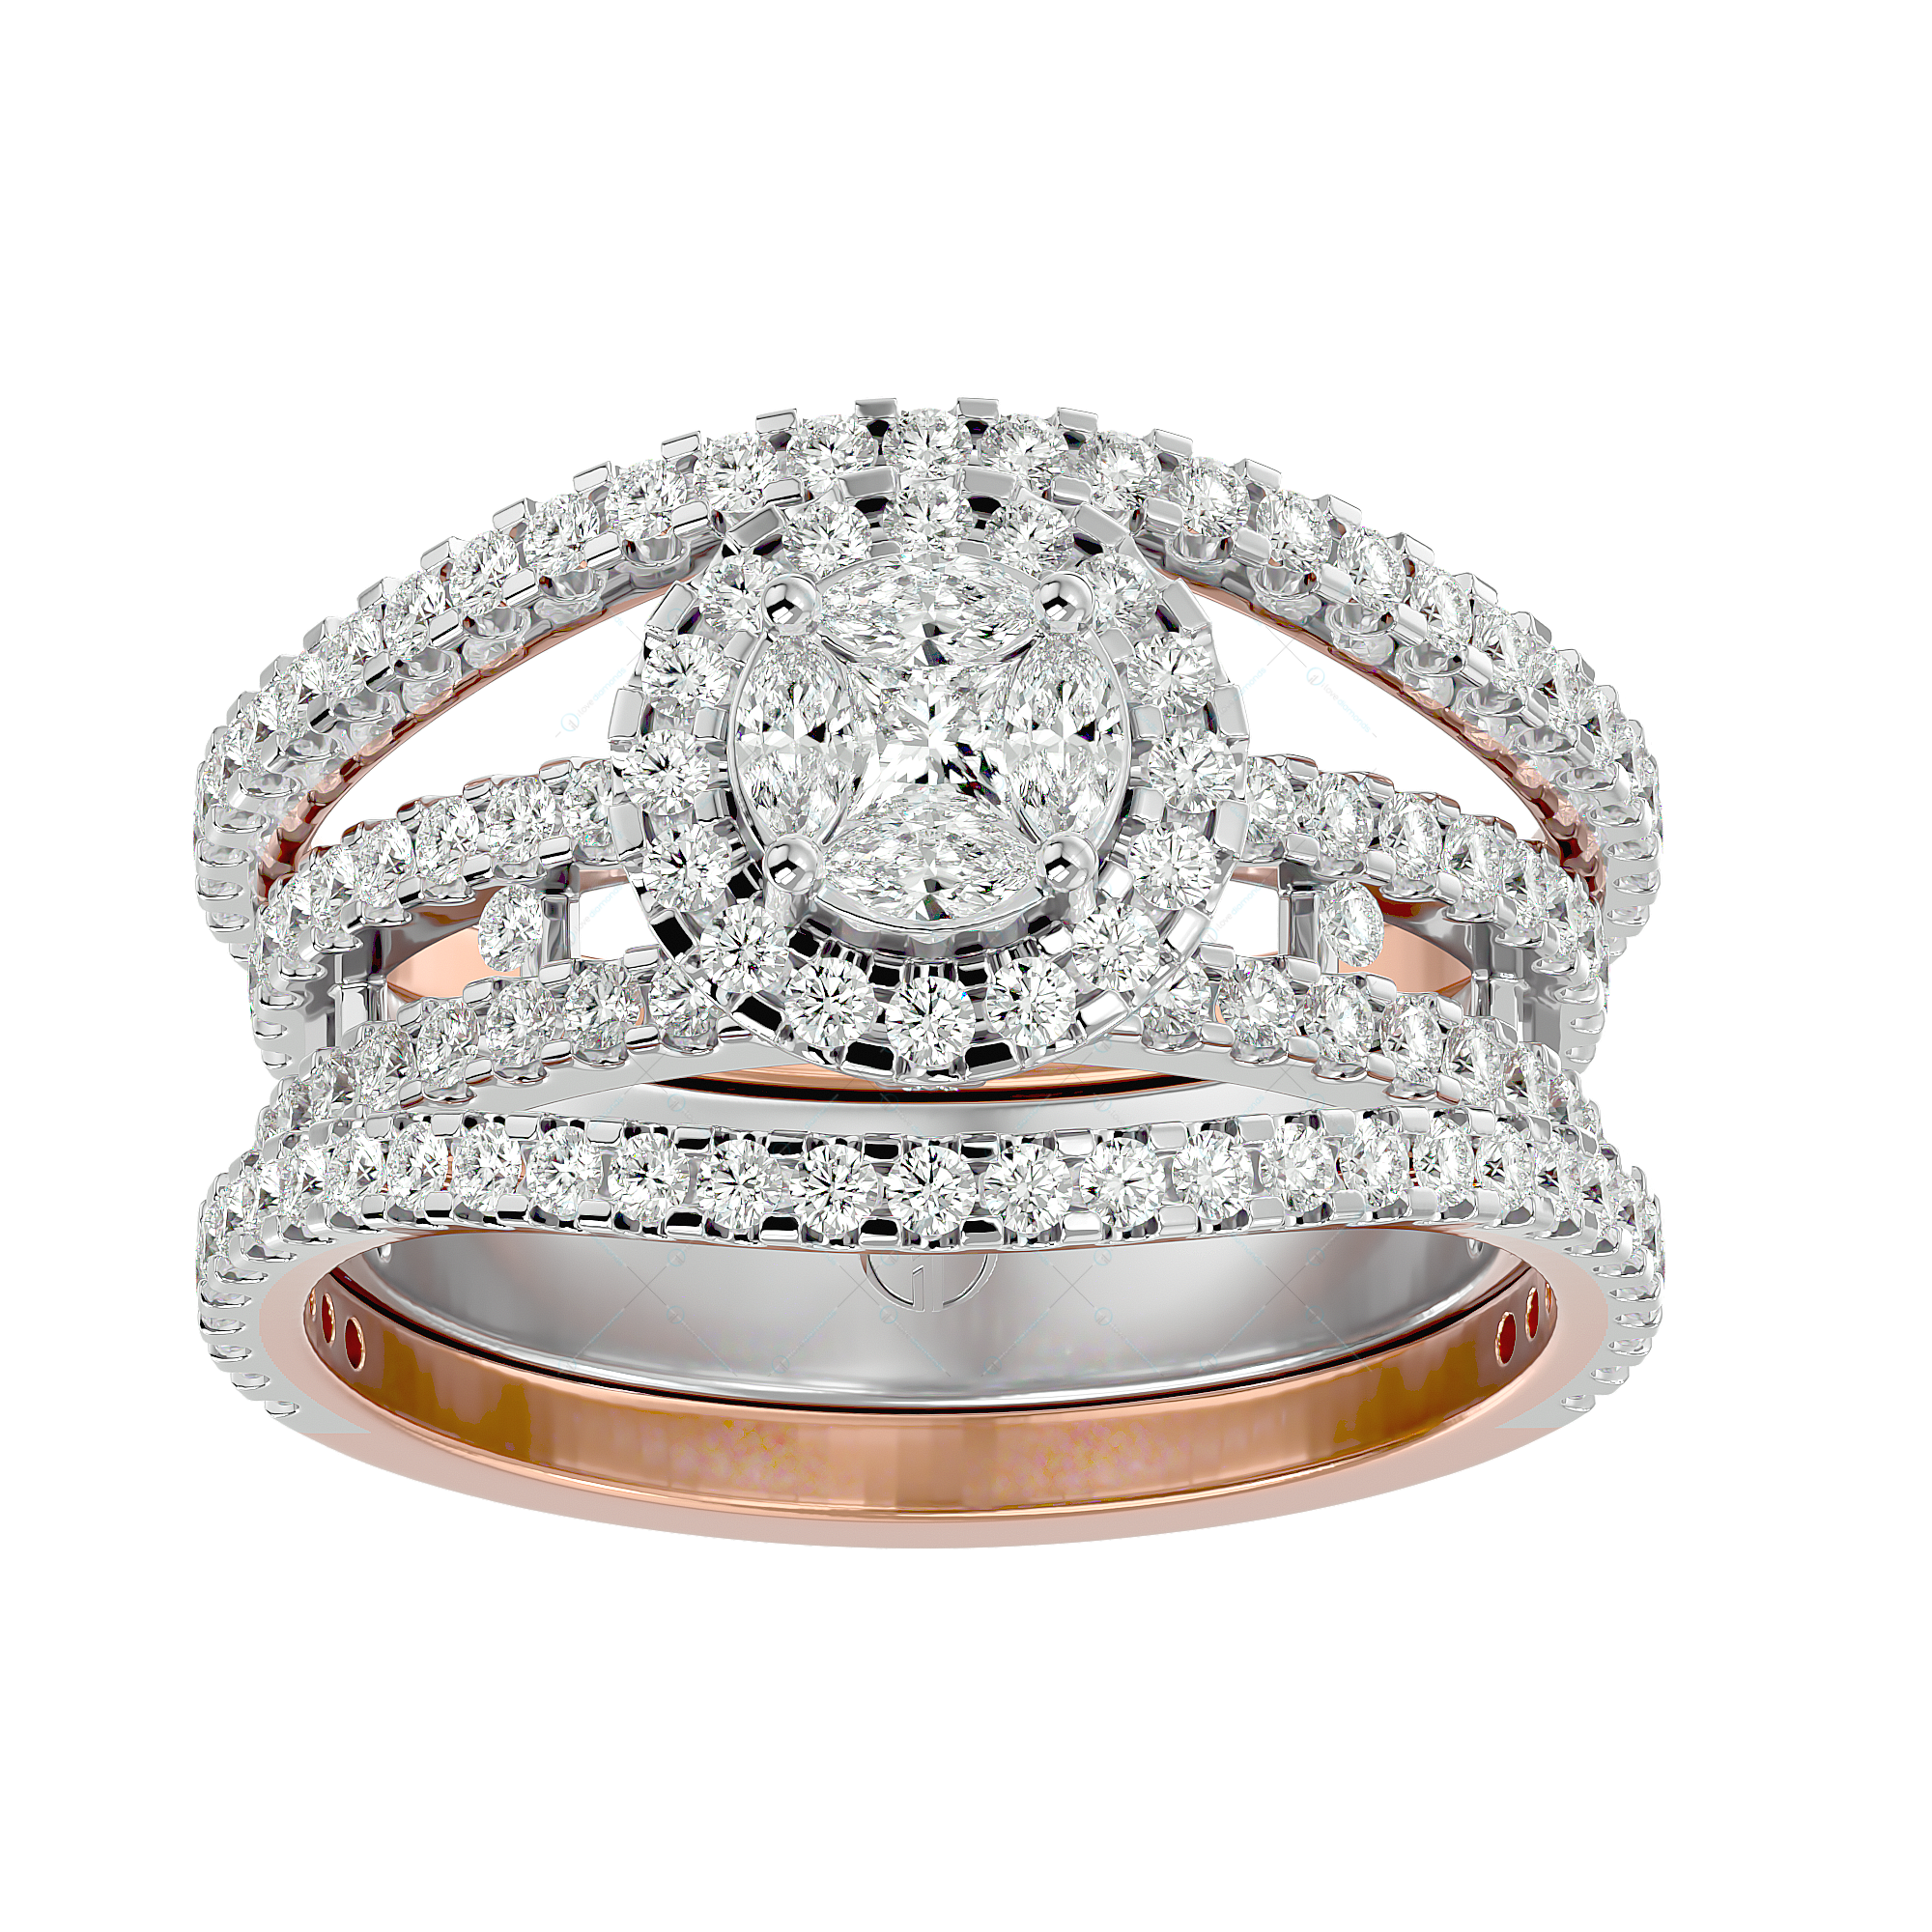 Splendid Appeal Solitaire Illusion Diamond Ring in Yellow Gold for Women v2